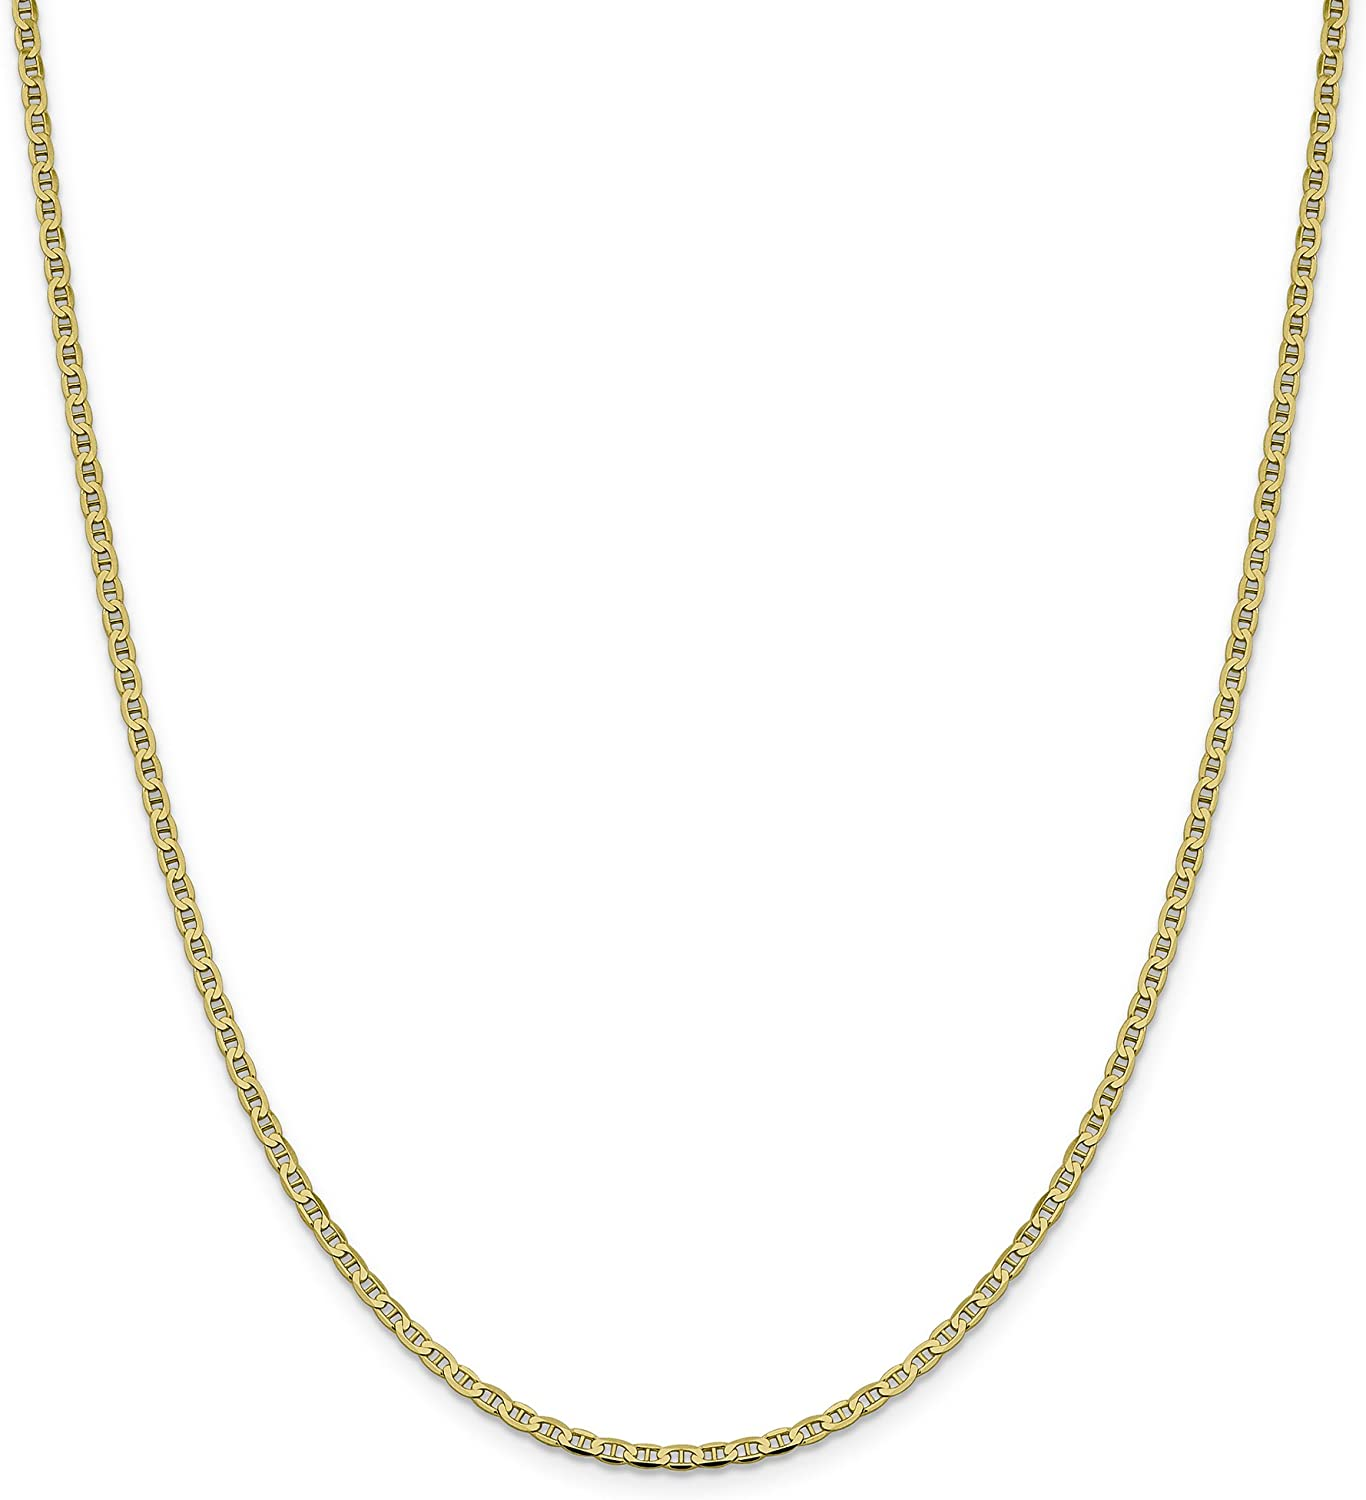 Leslies 14K Yellow Gold Box Chain Bracelet Anklet with Lobster Clasp 9 inch